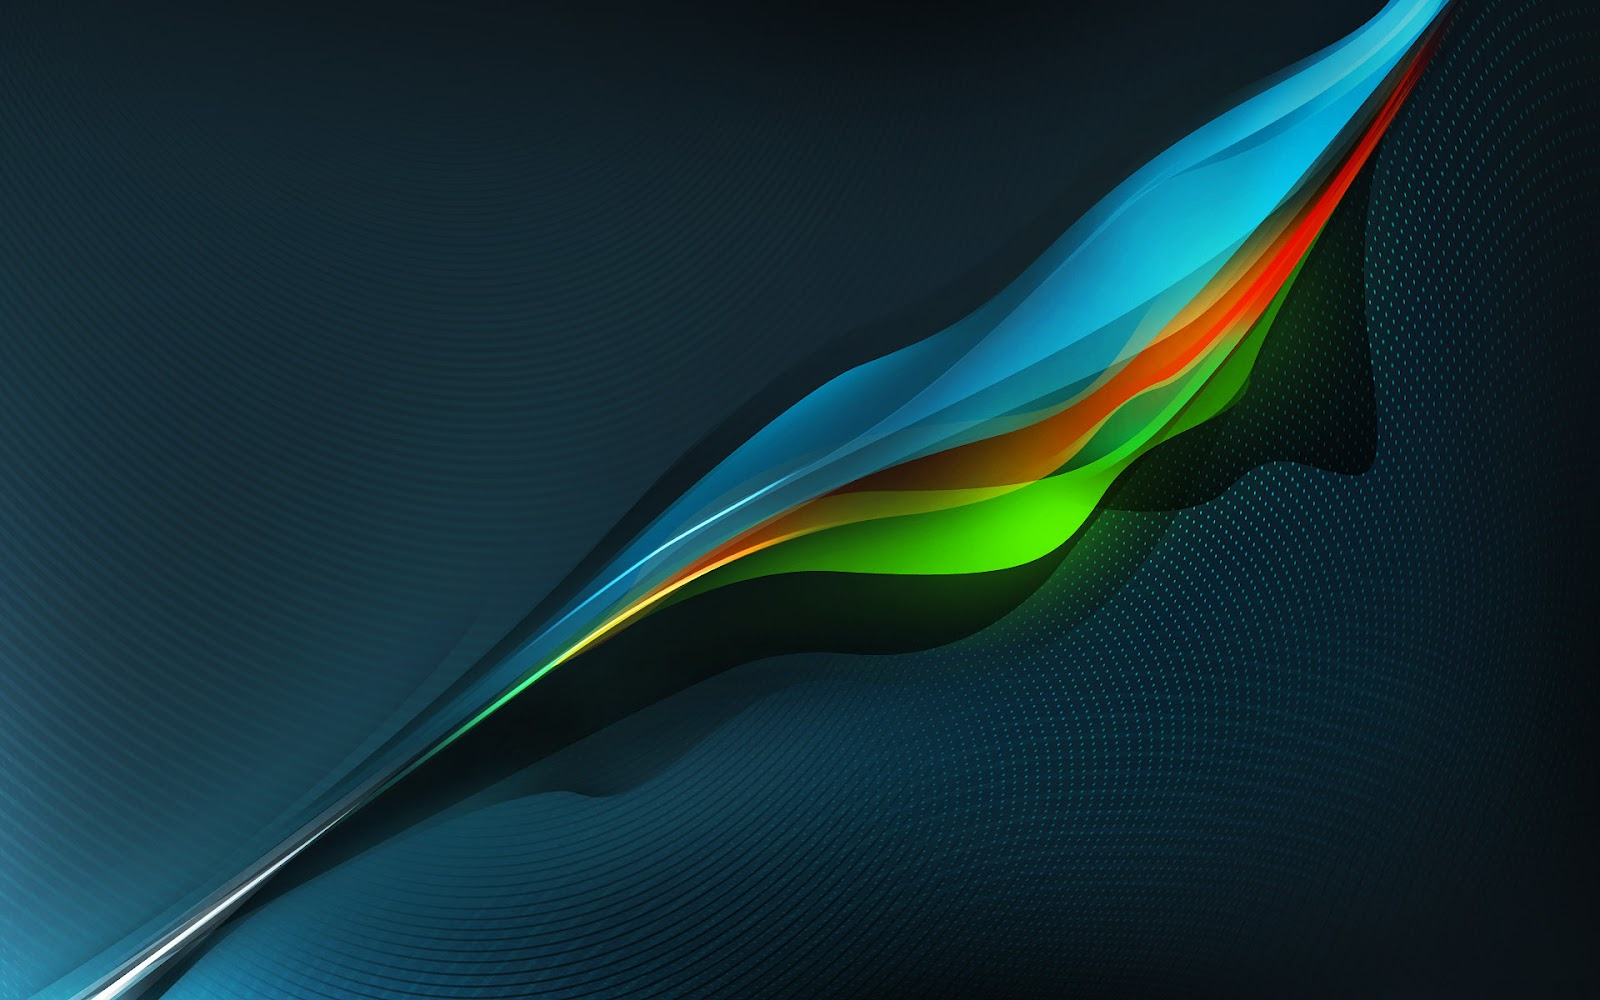 hd wallpapers 1080p abstract-#7